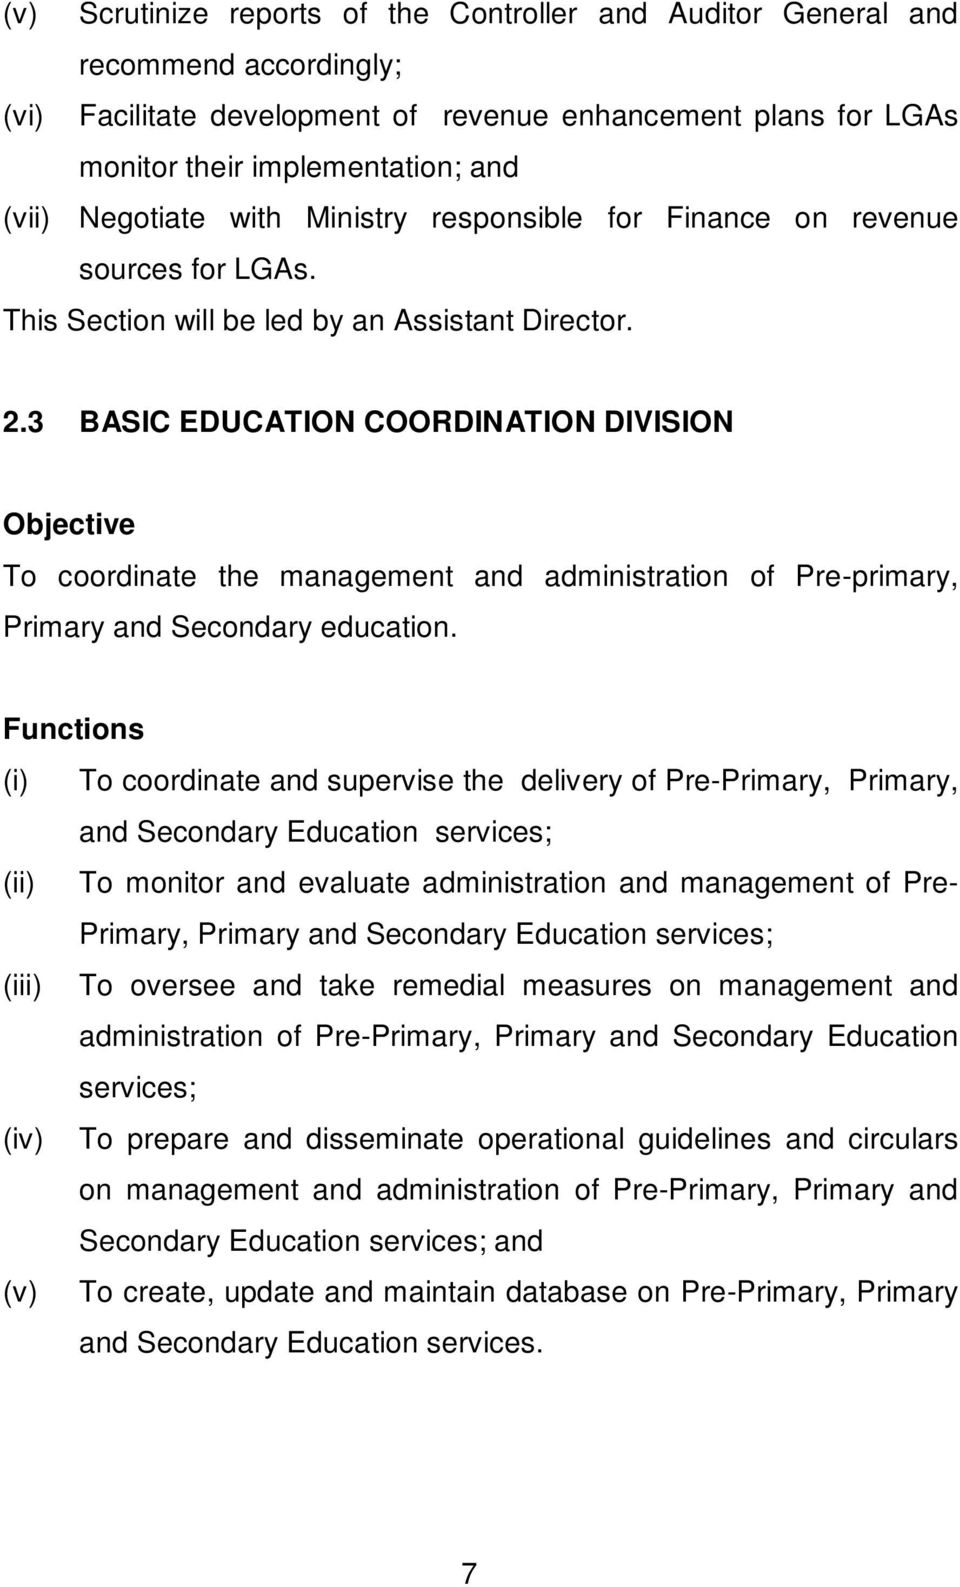 3 BASIC EDUCATION COORDINATION DIVISION Objective To coordinate the management and administration of Pre-primary, Primary and Secondary education.